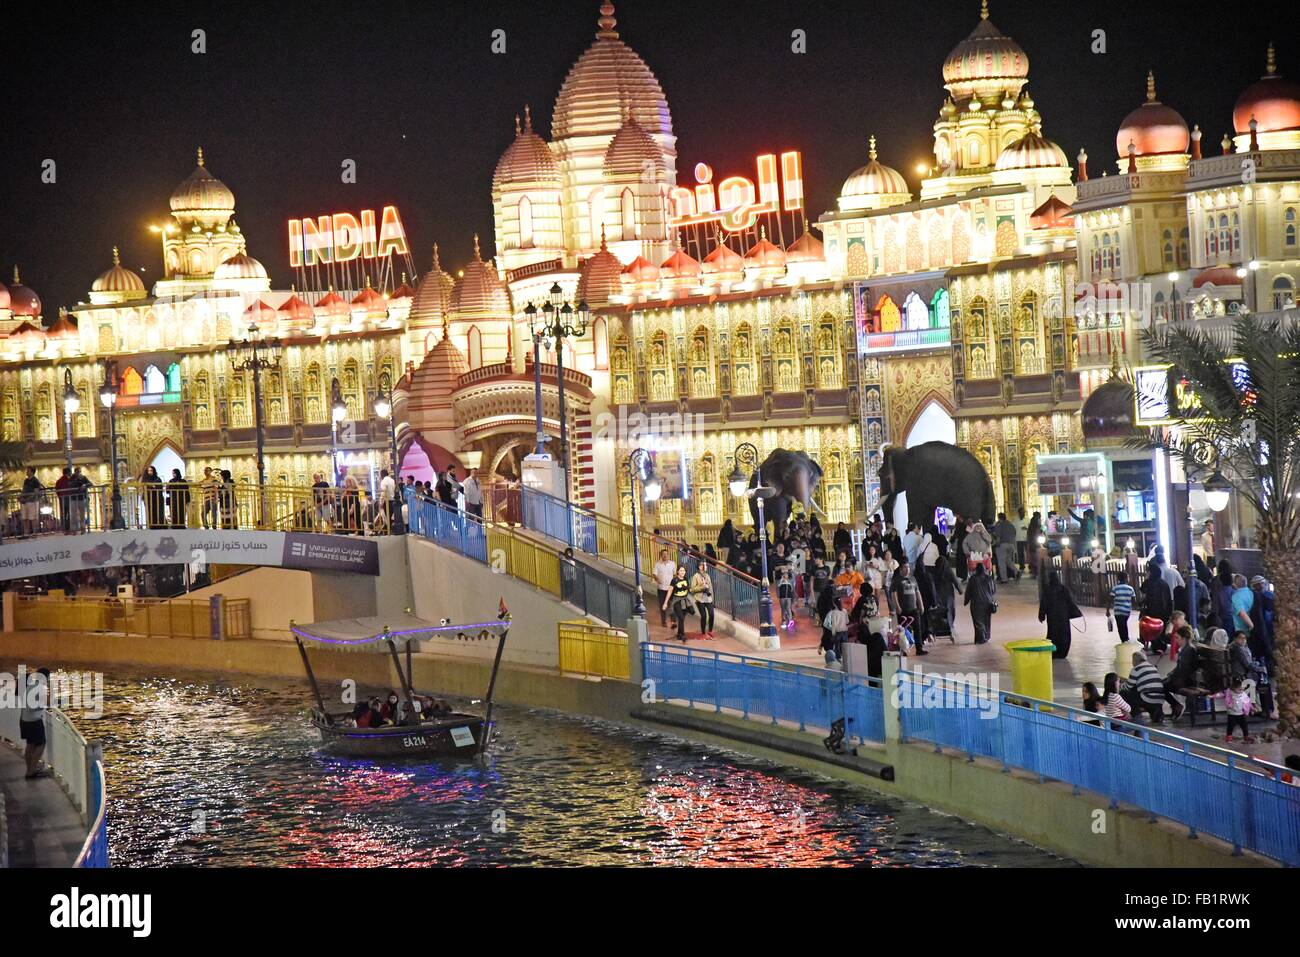 Global Village Dubailand, Dubai, UAE claimed to be the world's largest tourism, leisure and entertainment project. - Stock Image